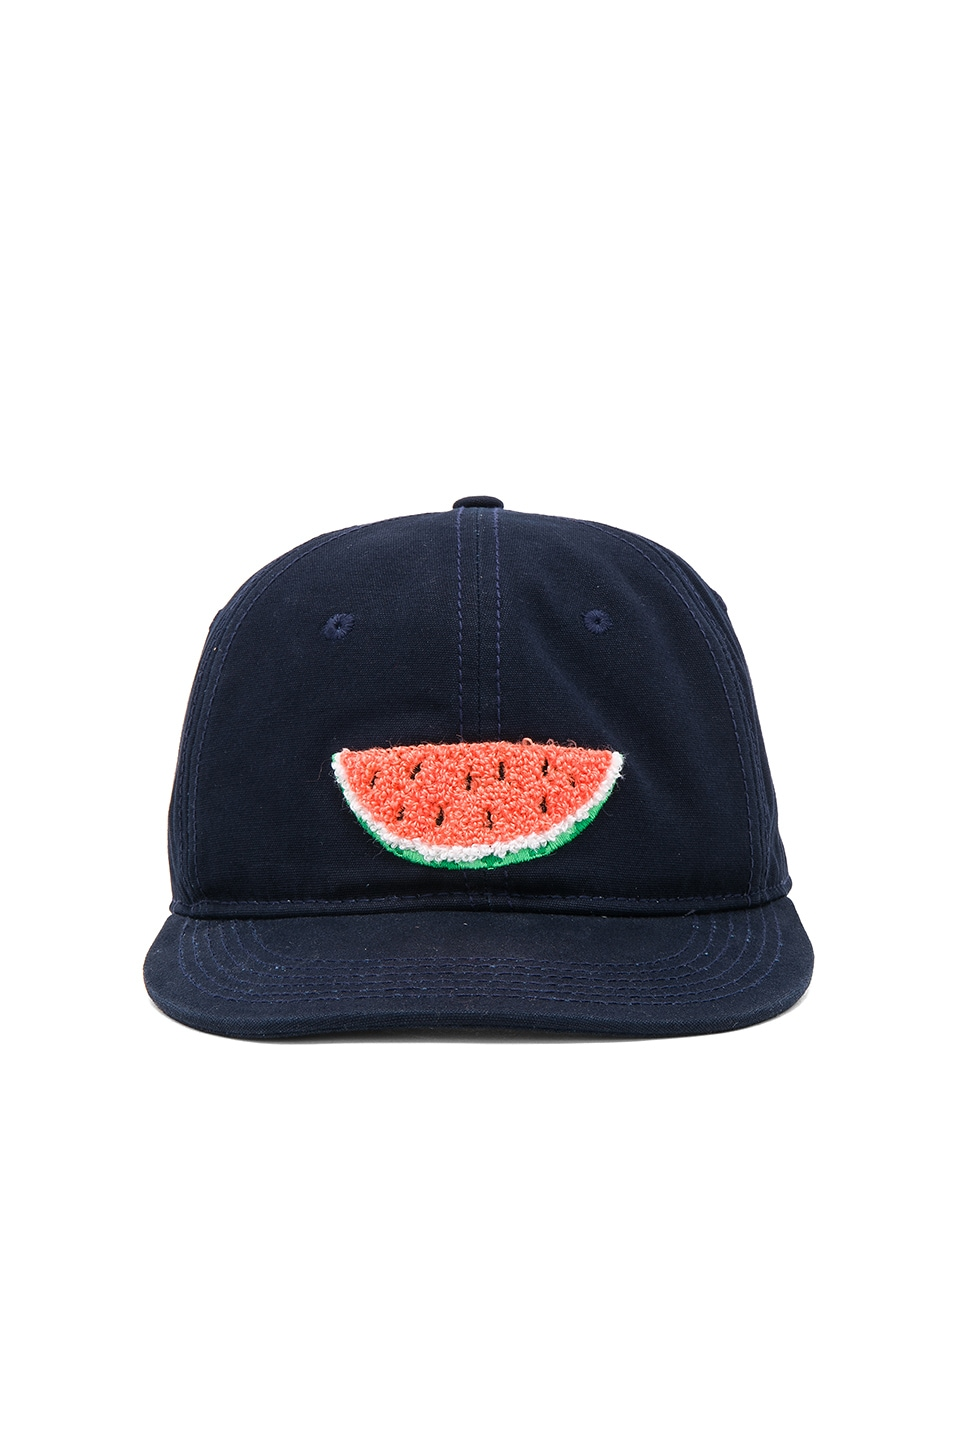 Melon Hat by Ambsn